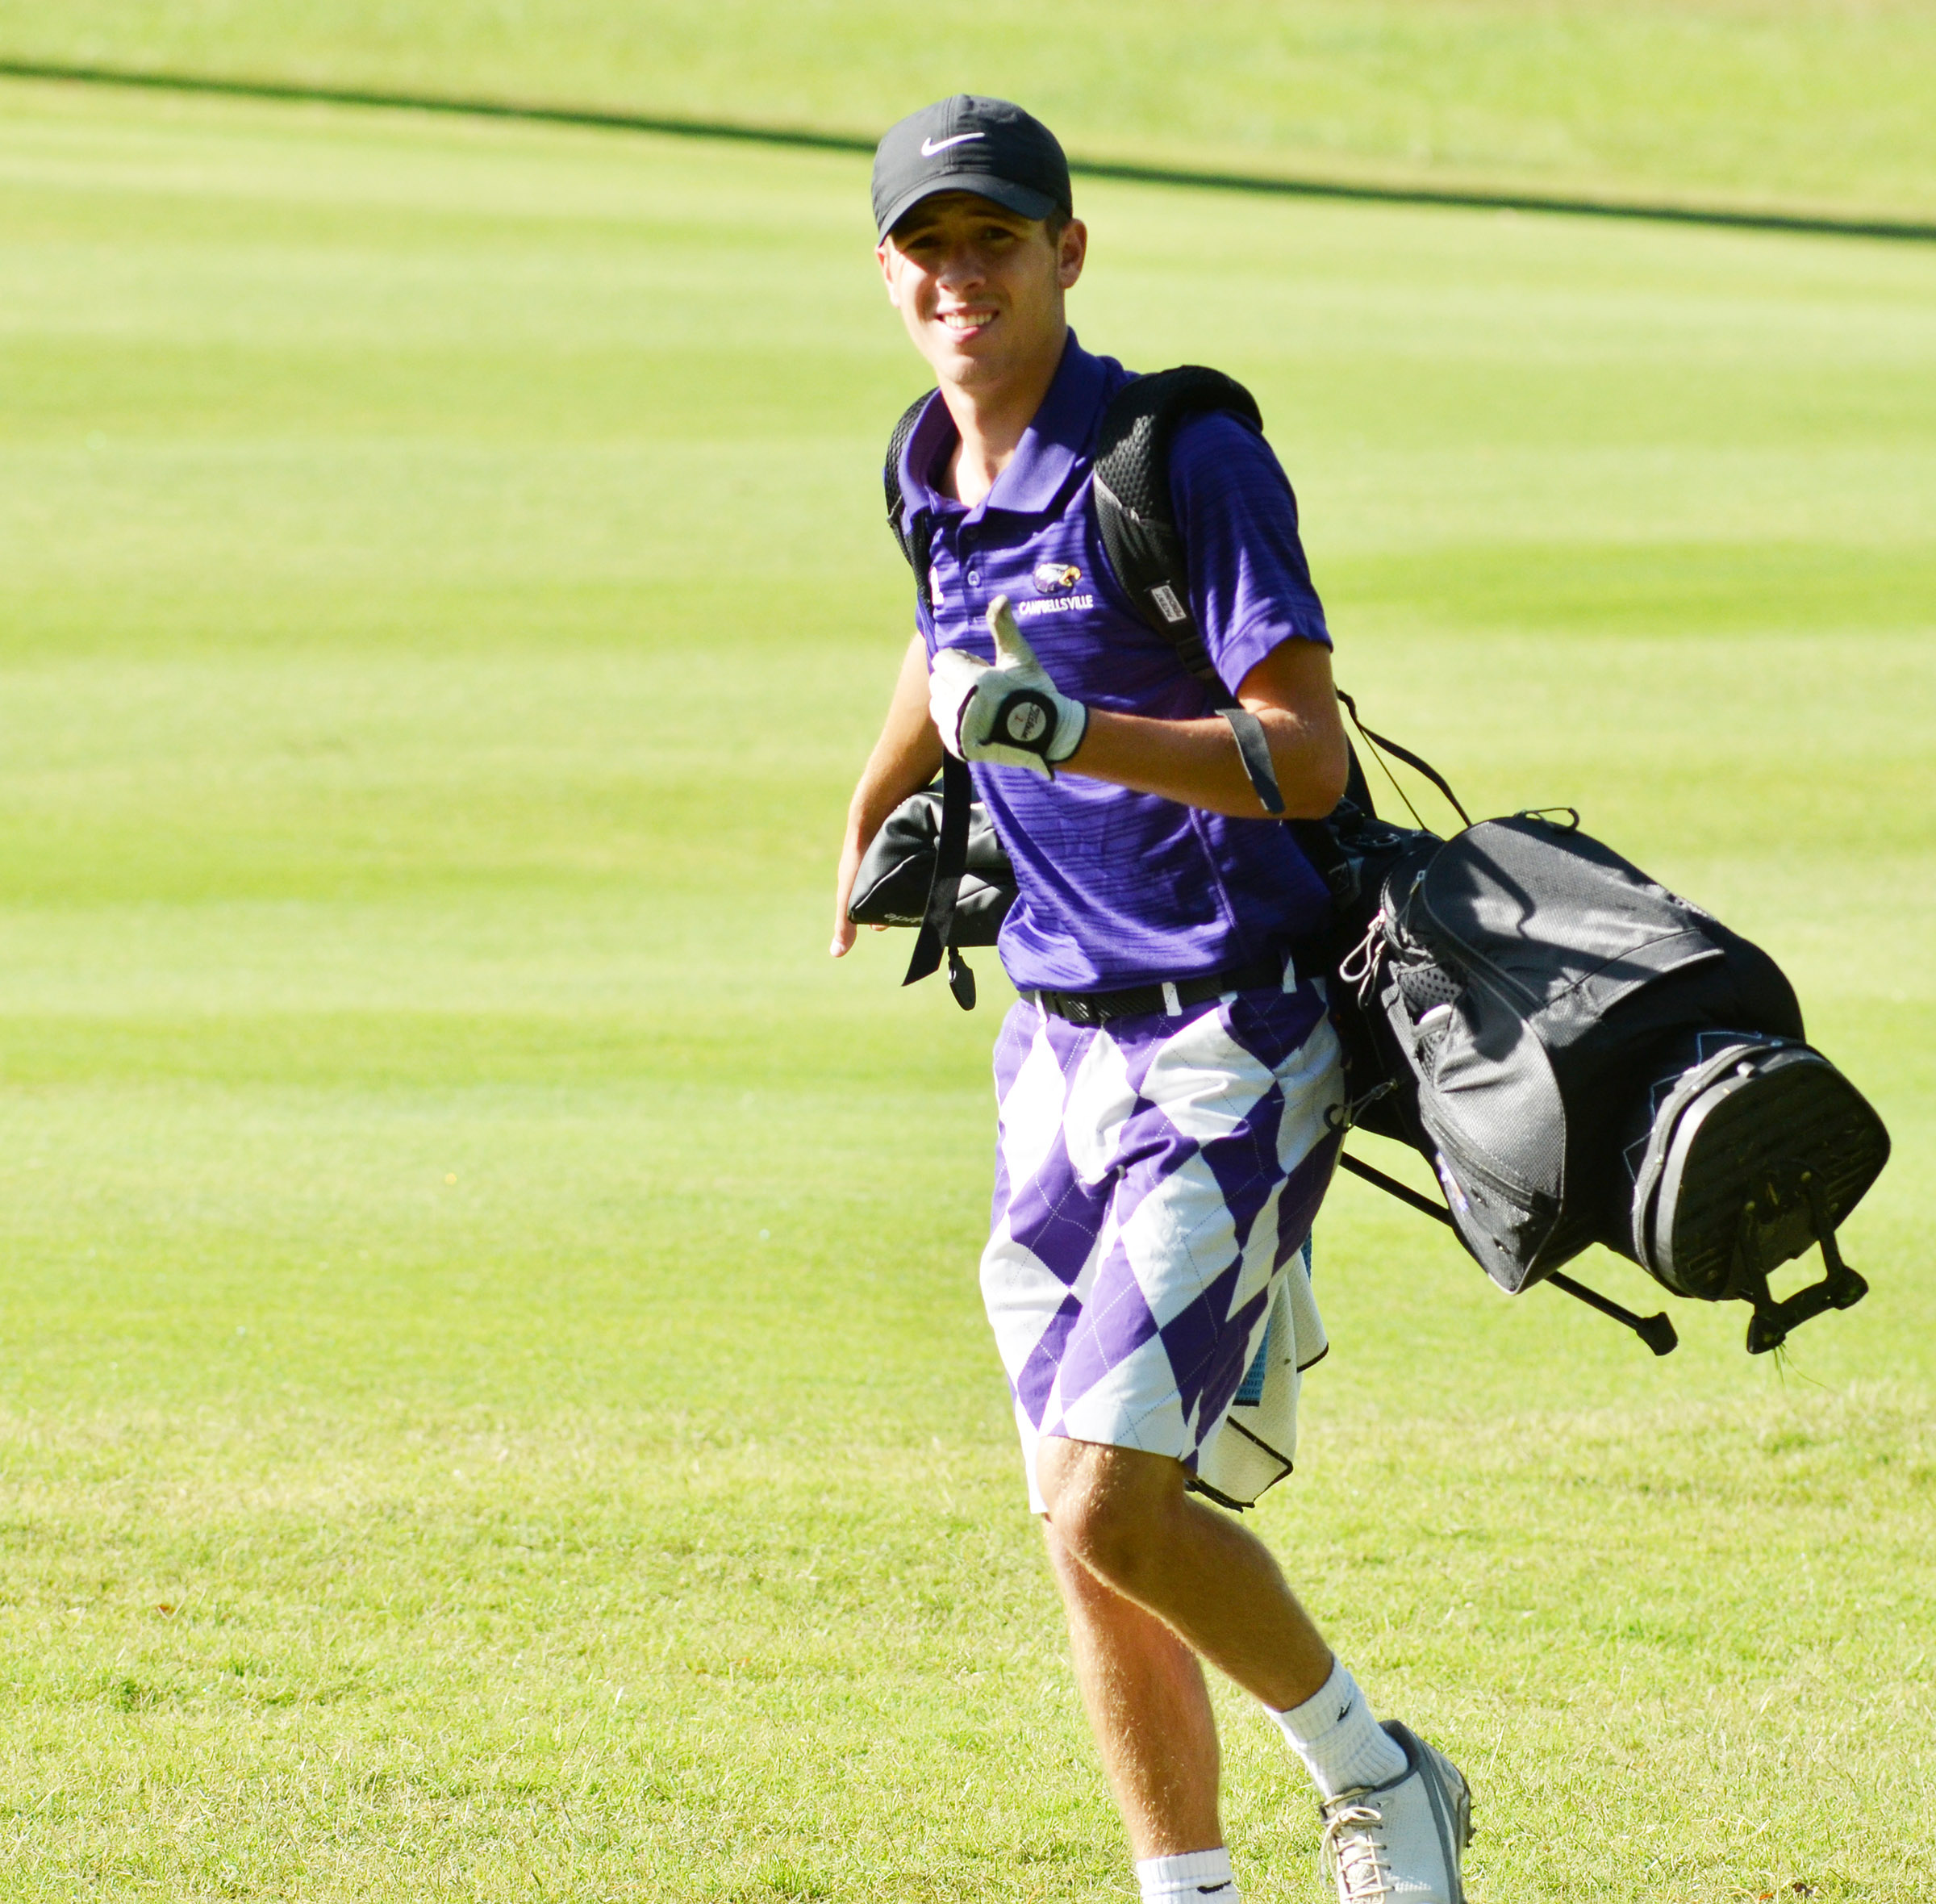 CHS junior Layton Hord gives a thumbs up as he walks to his ball.